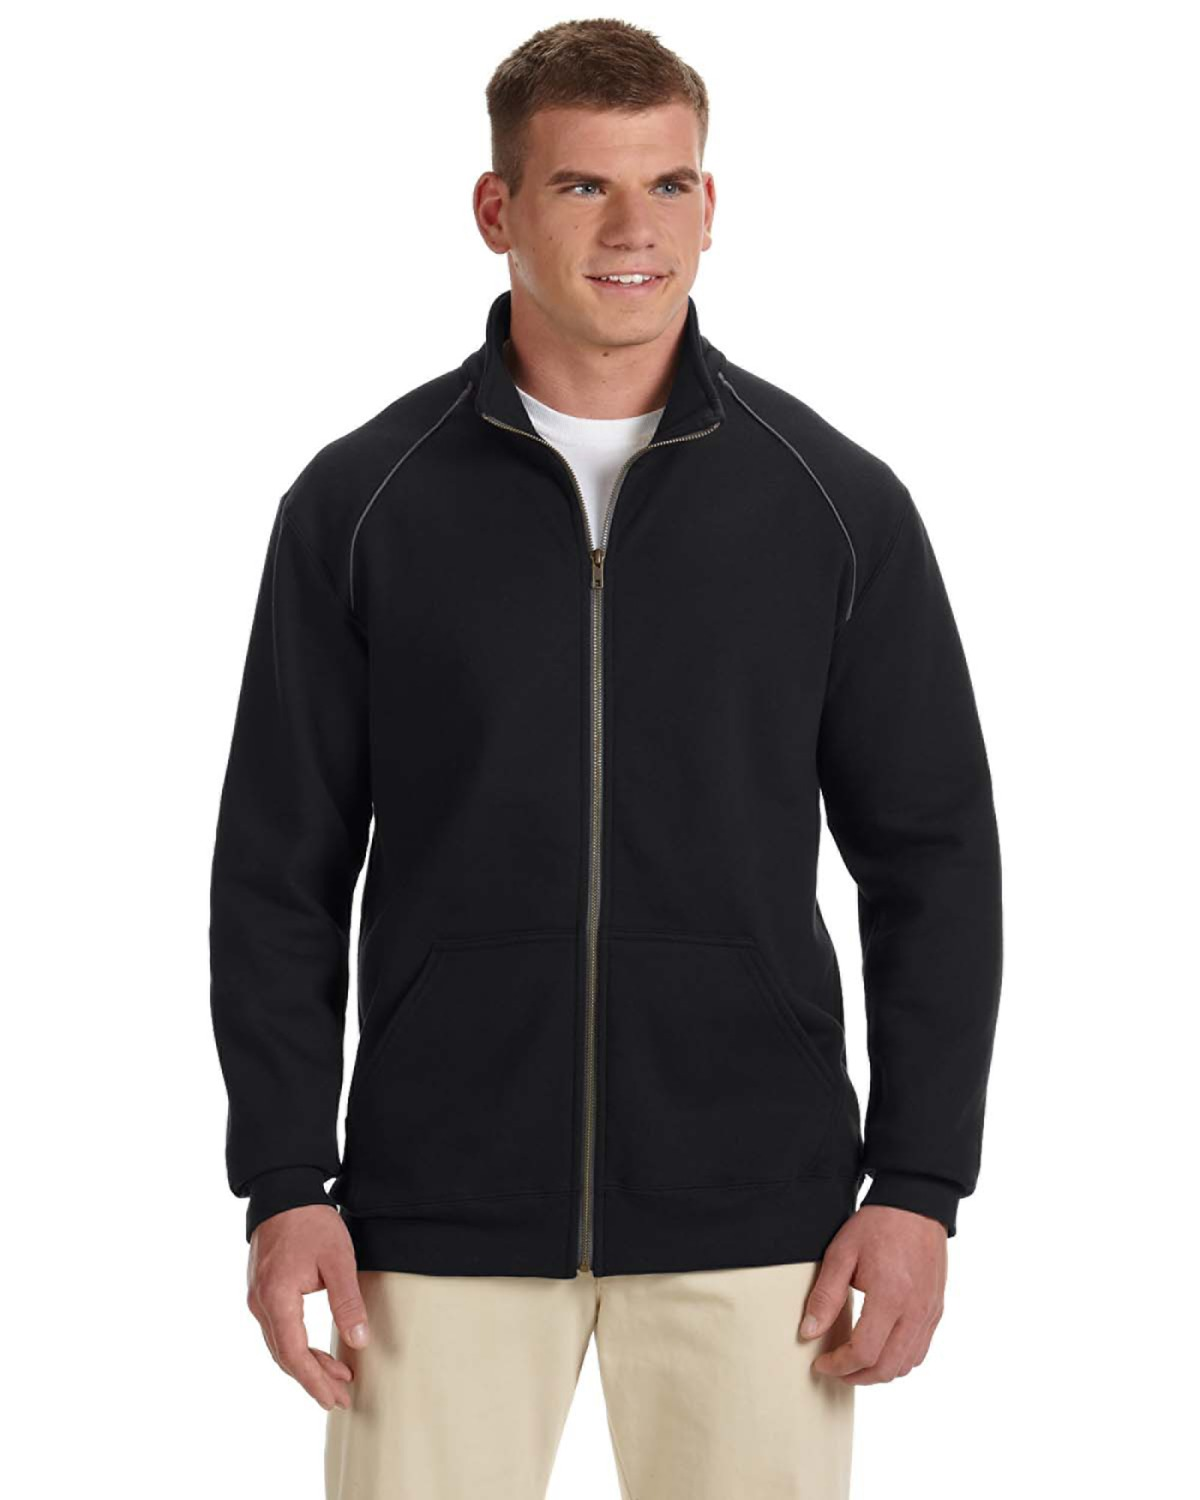 Adult Premium Cotton® 9 oz. Fleece Full-Zip Jacket